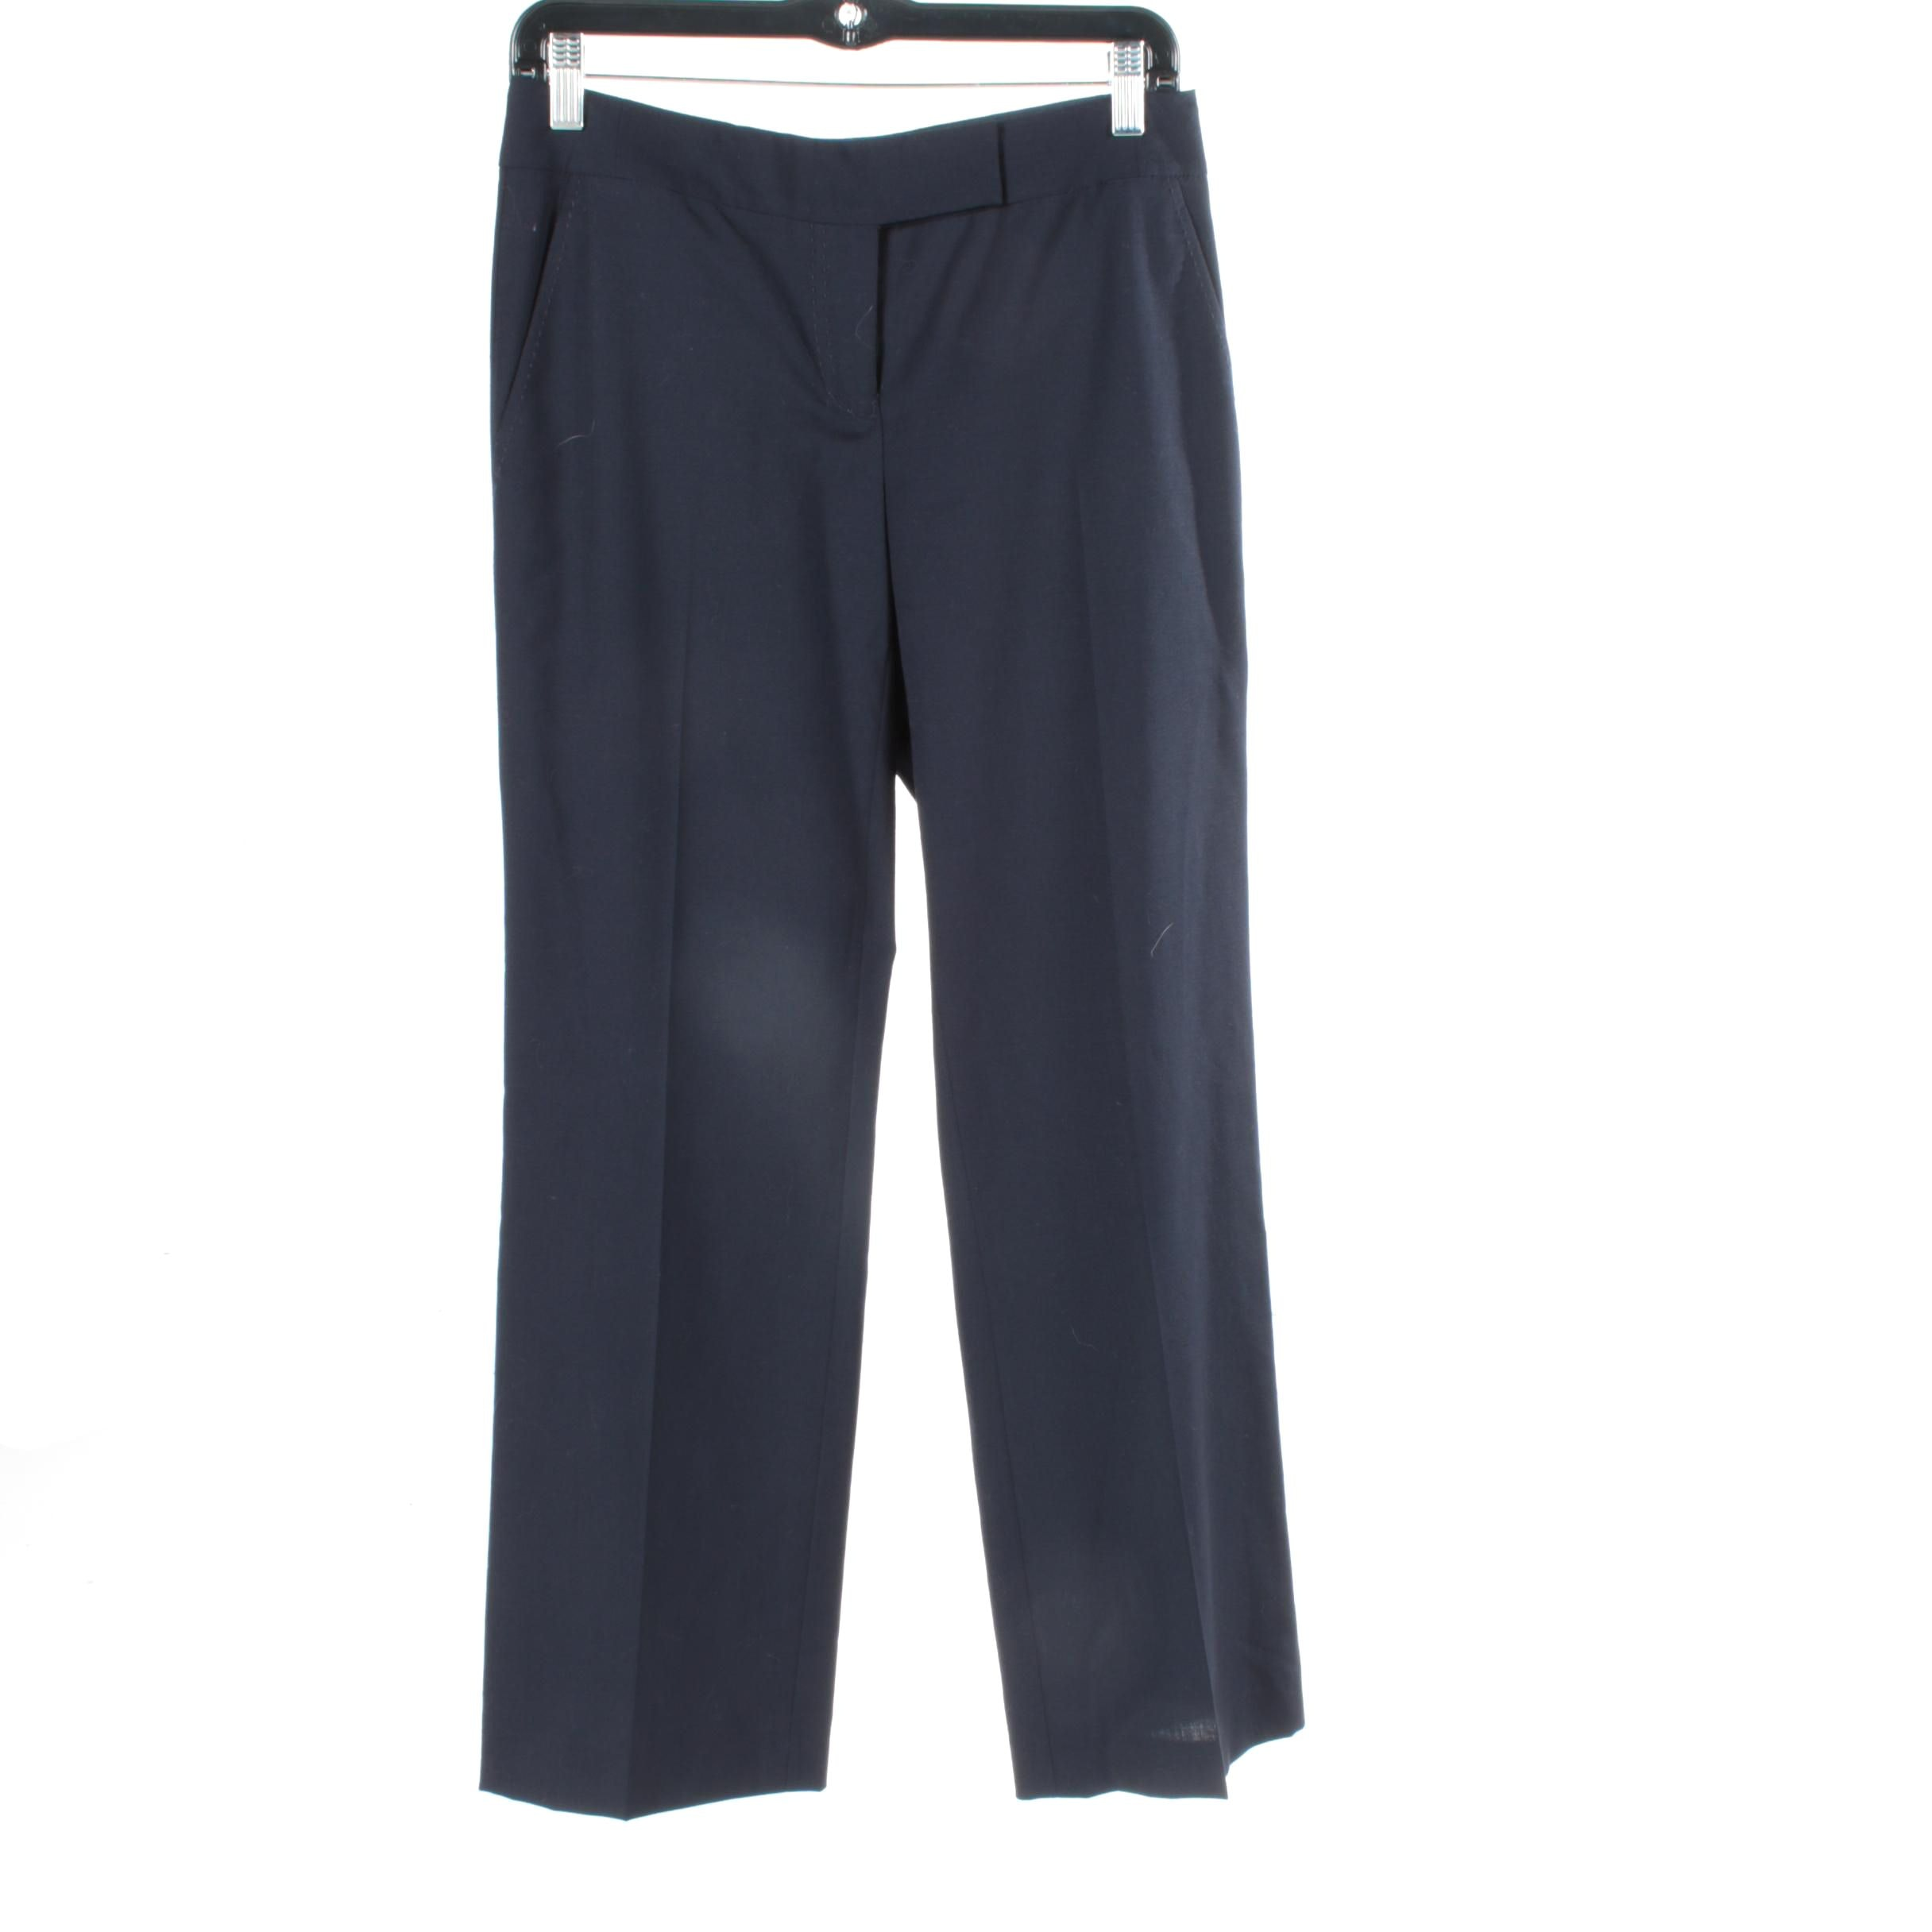 Women's Tory Burch Wool Blend Trousers